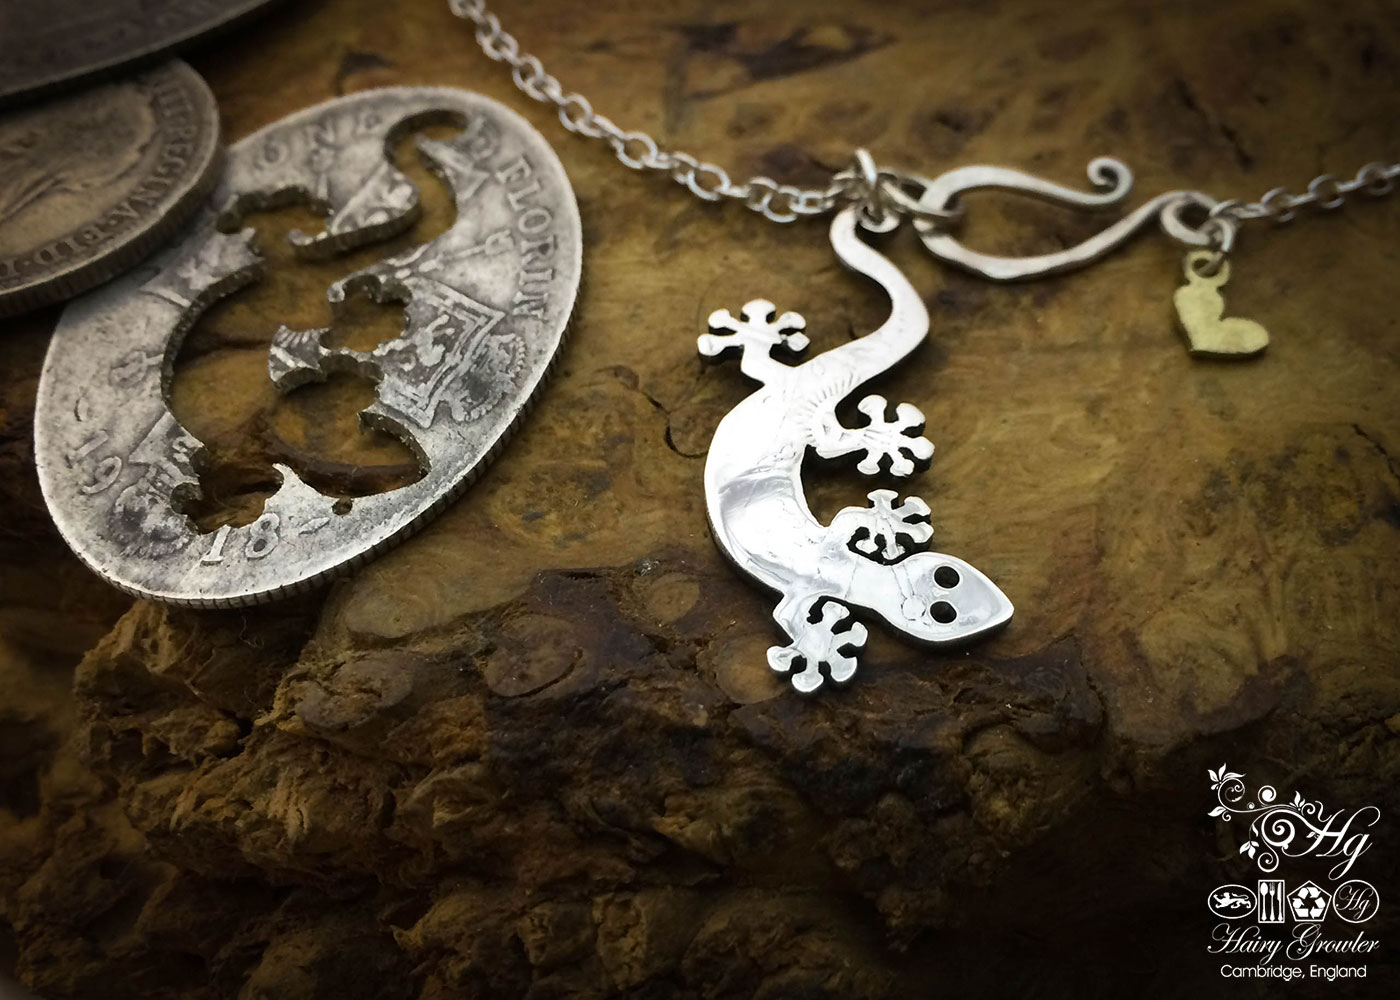 Handmade and upcycled silver coin Gecko necklace pendant